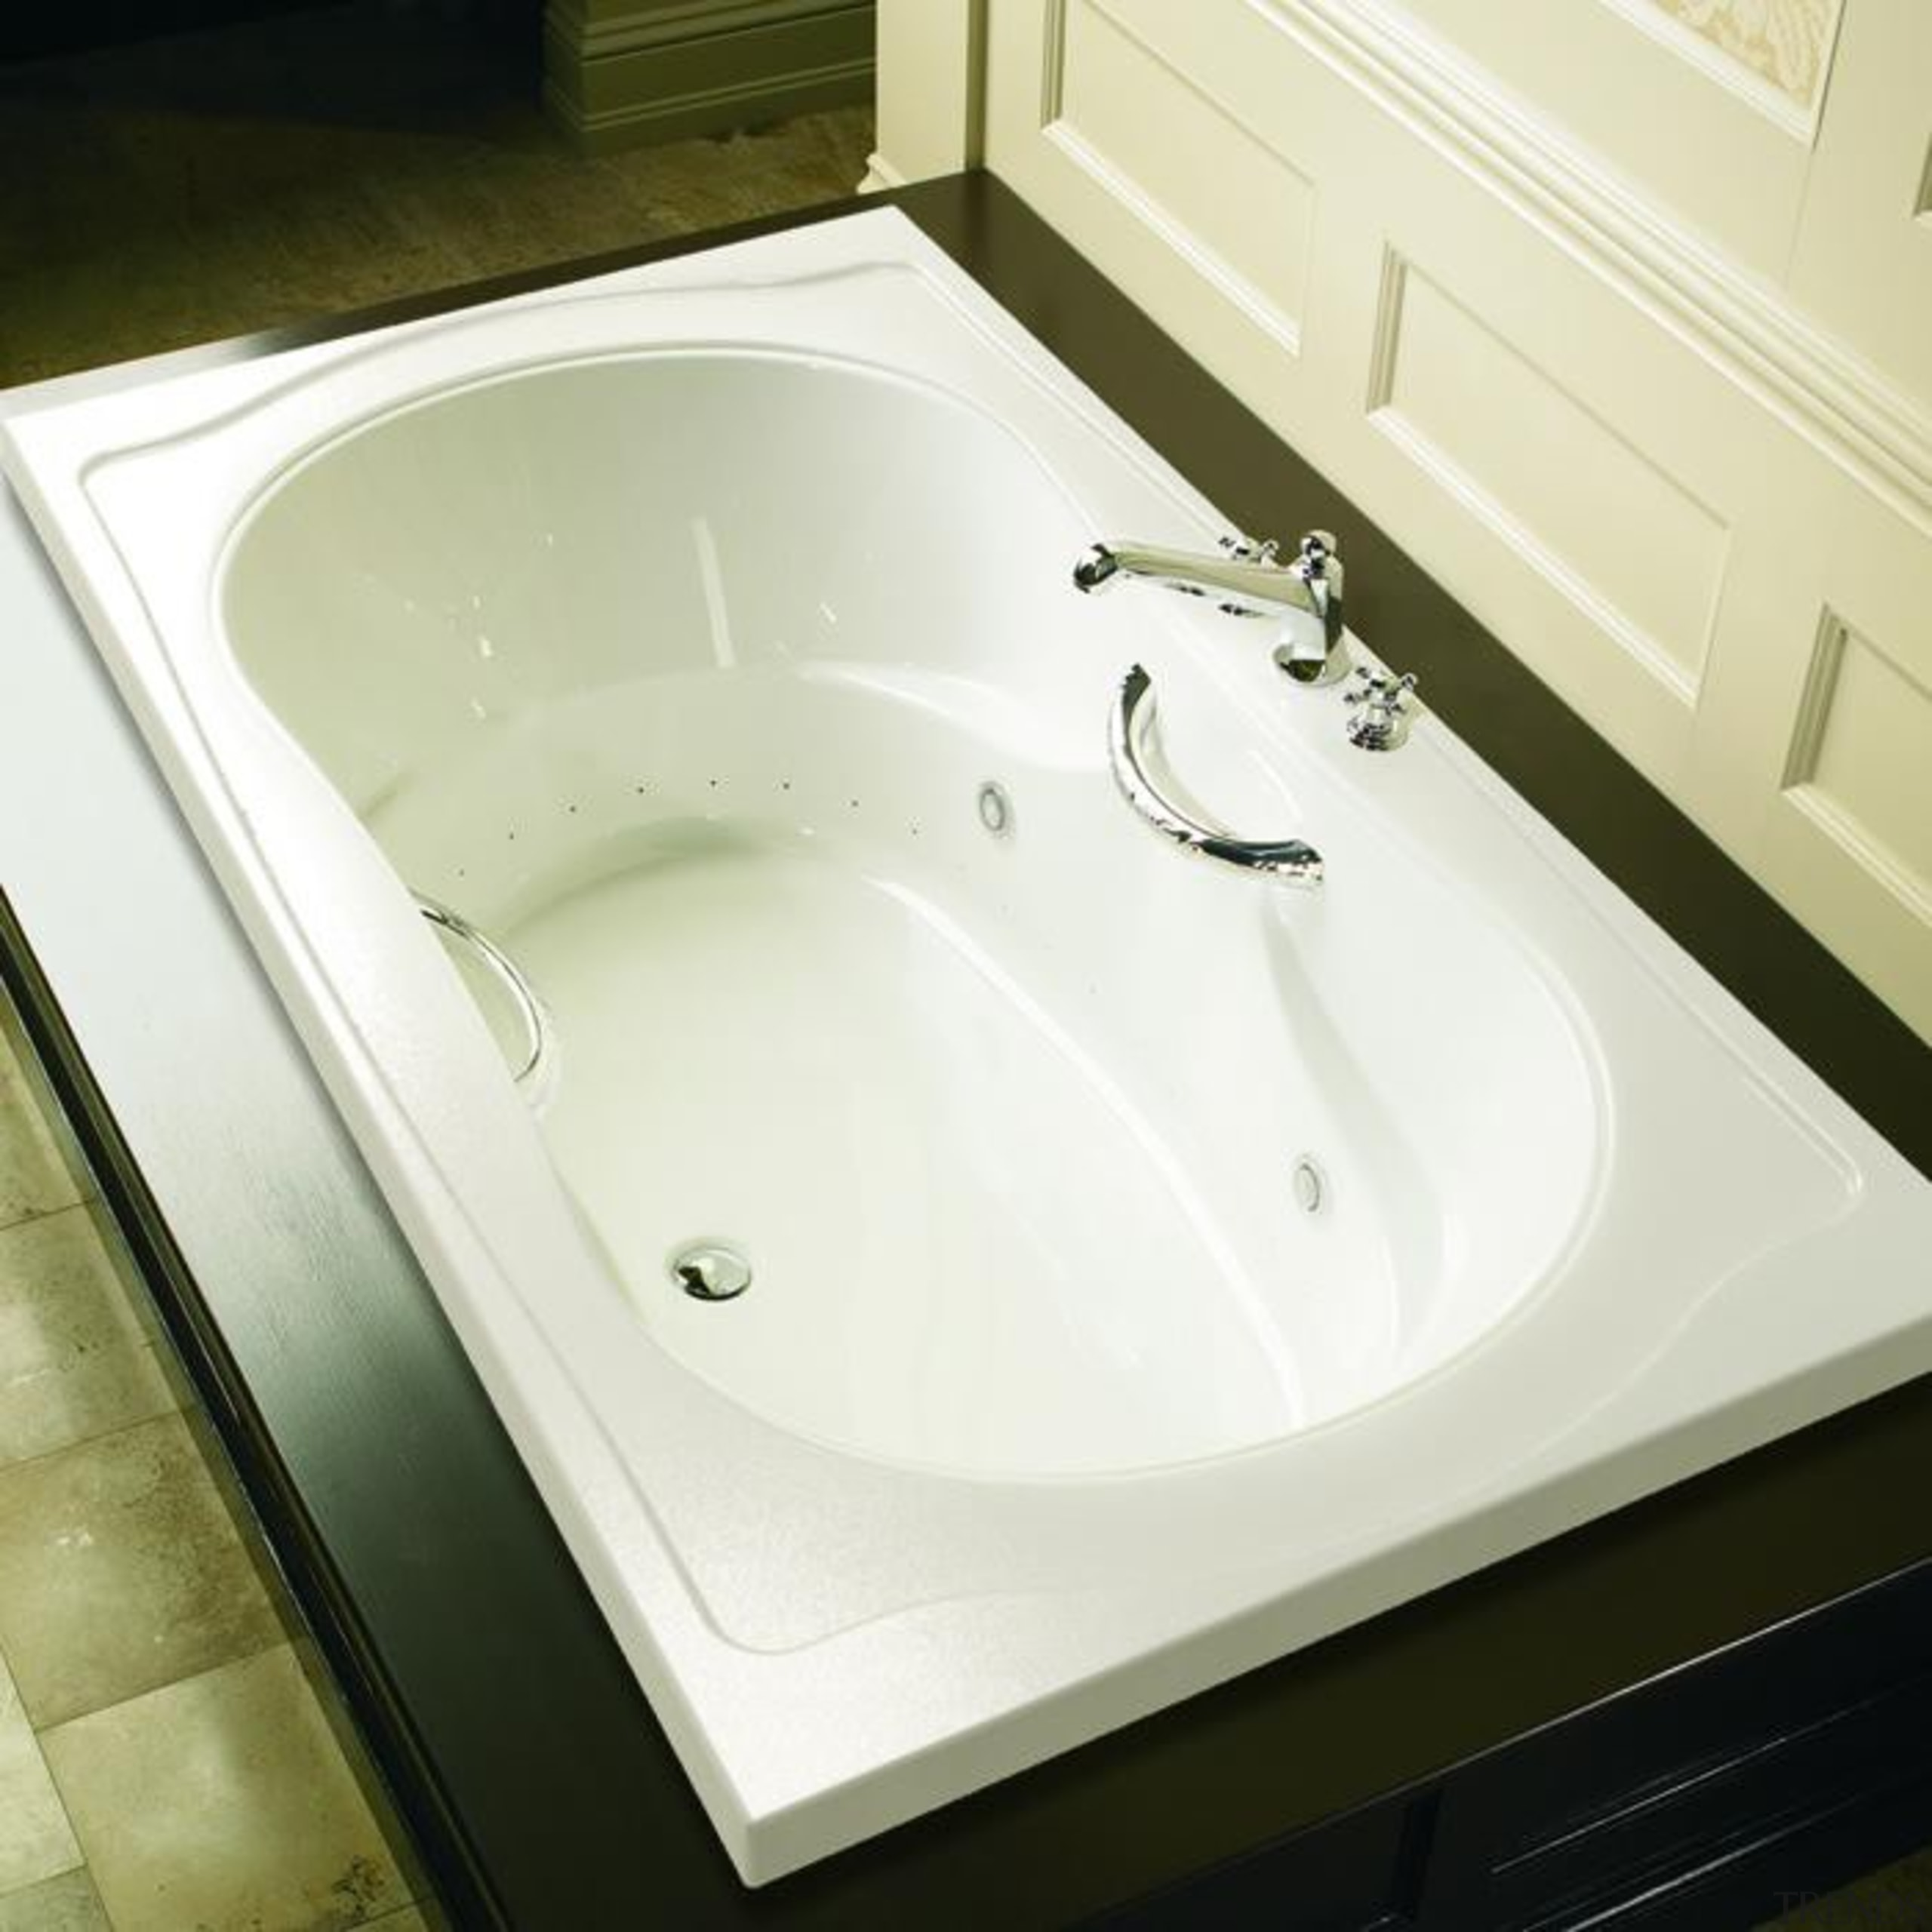 elegancia contour 12 700x700.jpg - elegancia_contour_12_700x700.jpg - angle angle, bathroom, bathroom sink, bathtub, ceramic, countertop, floor, plumbing fixture, product design, sink, tap, toilet seat, white